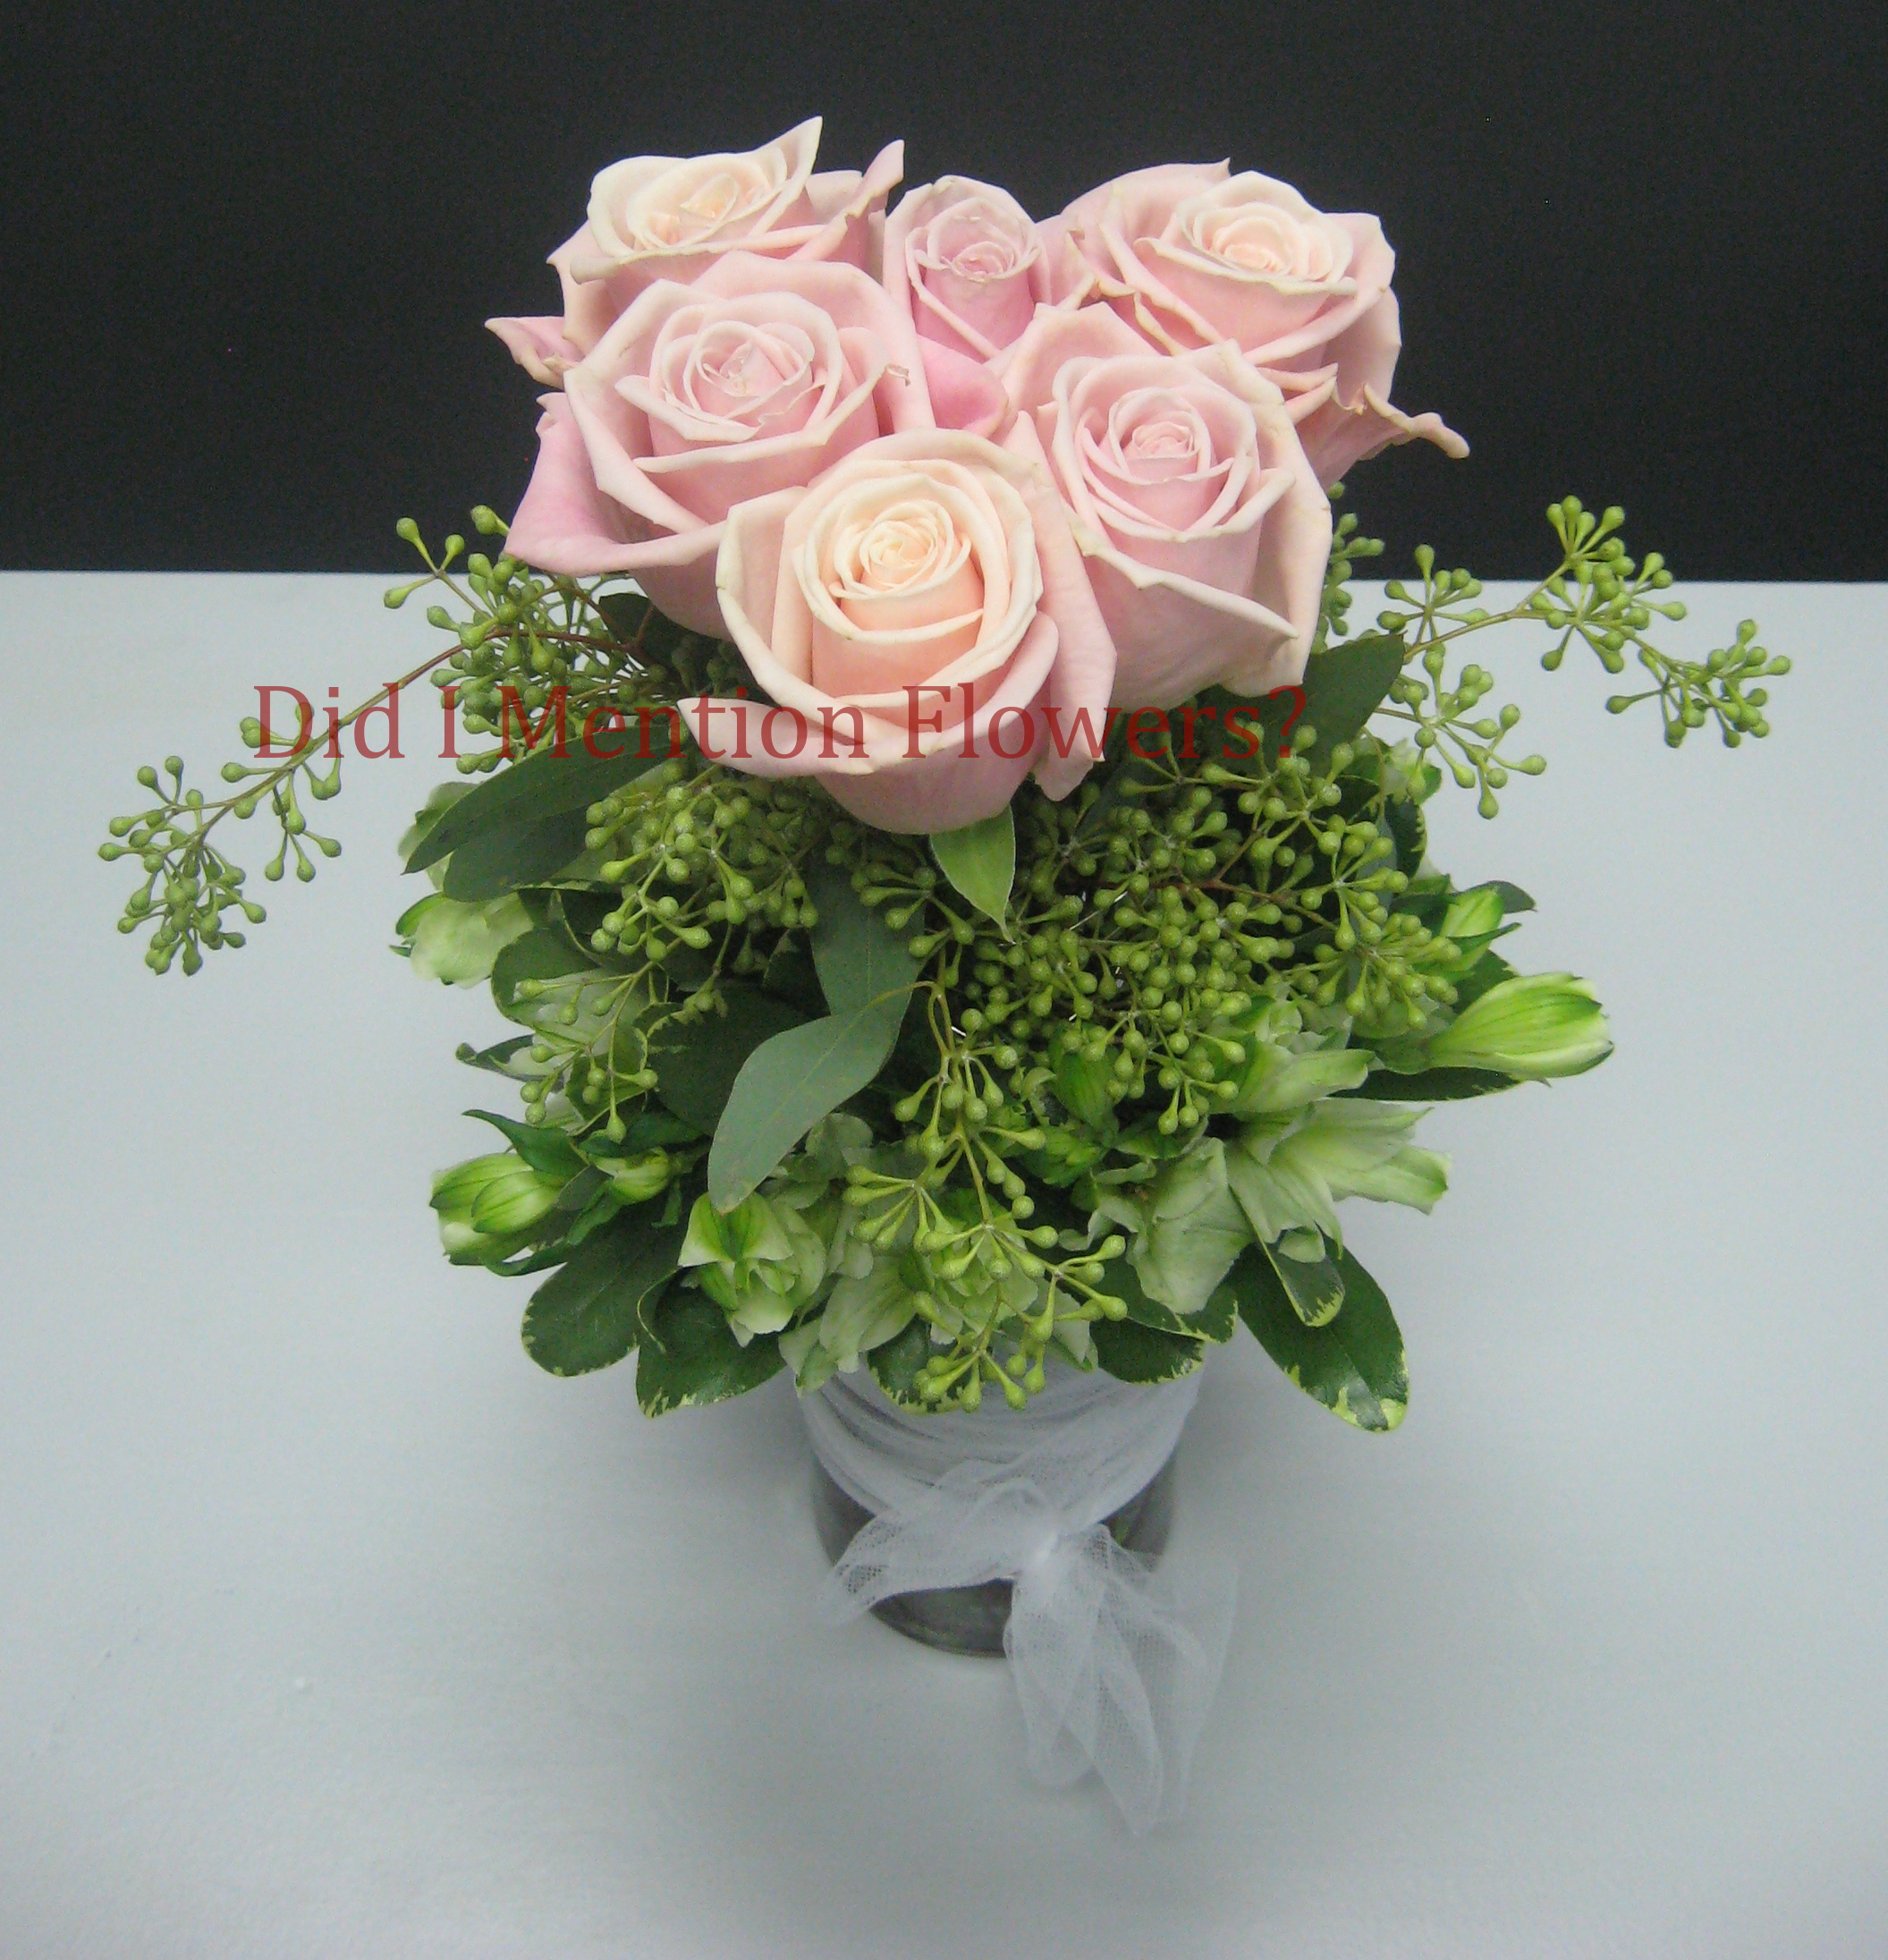 16 - Six Pack of Love Rose Vase Arrangement